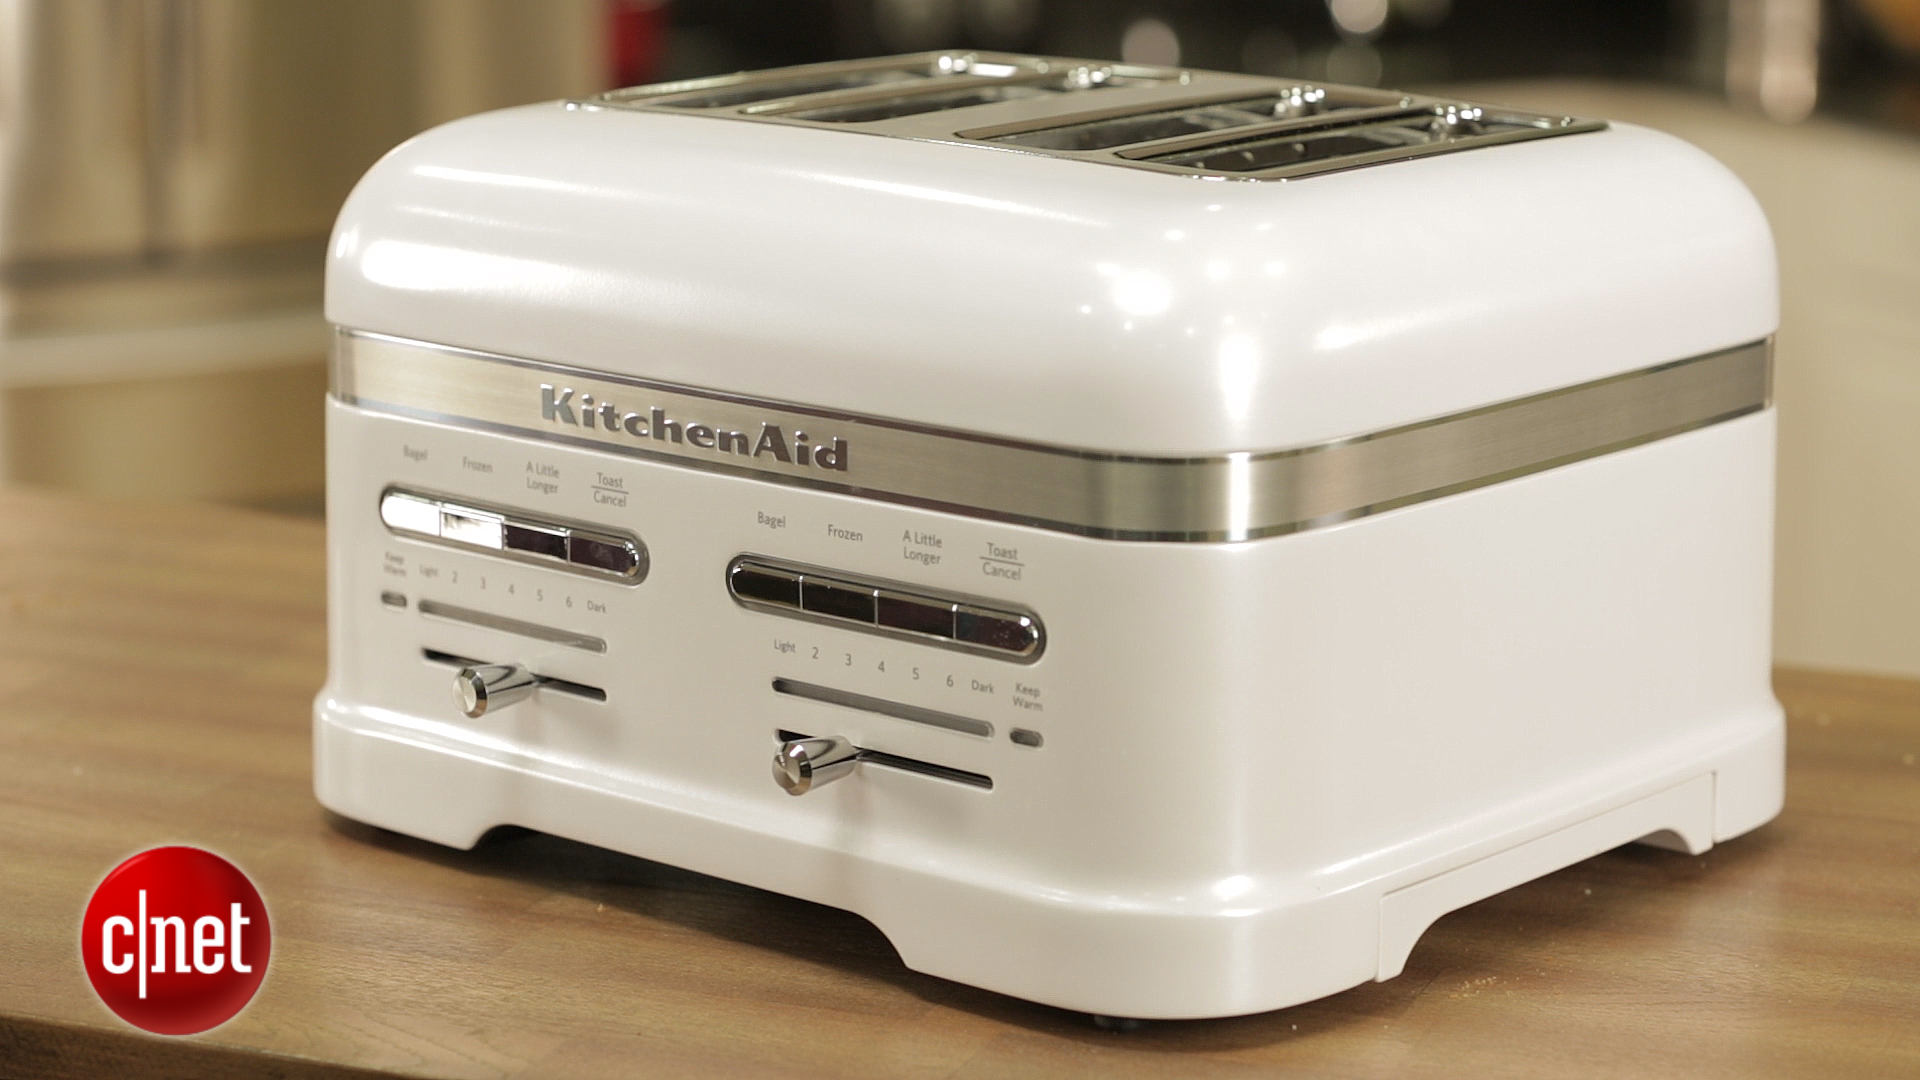 Video: The $500 KitchenAid Toaster takes you for a ride